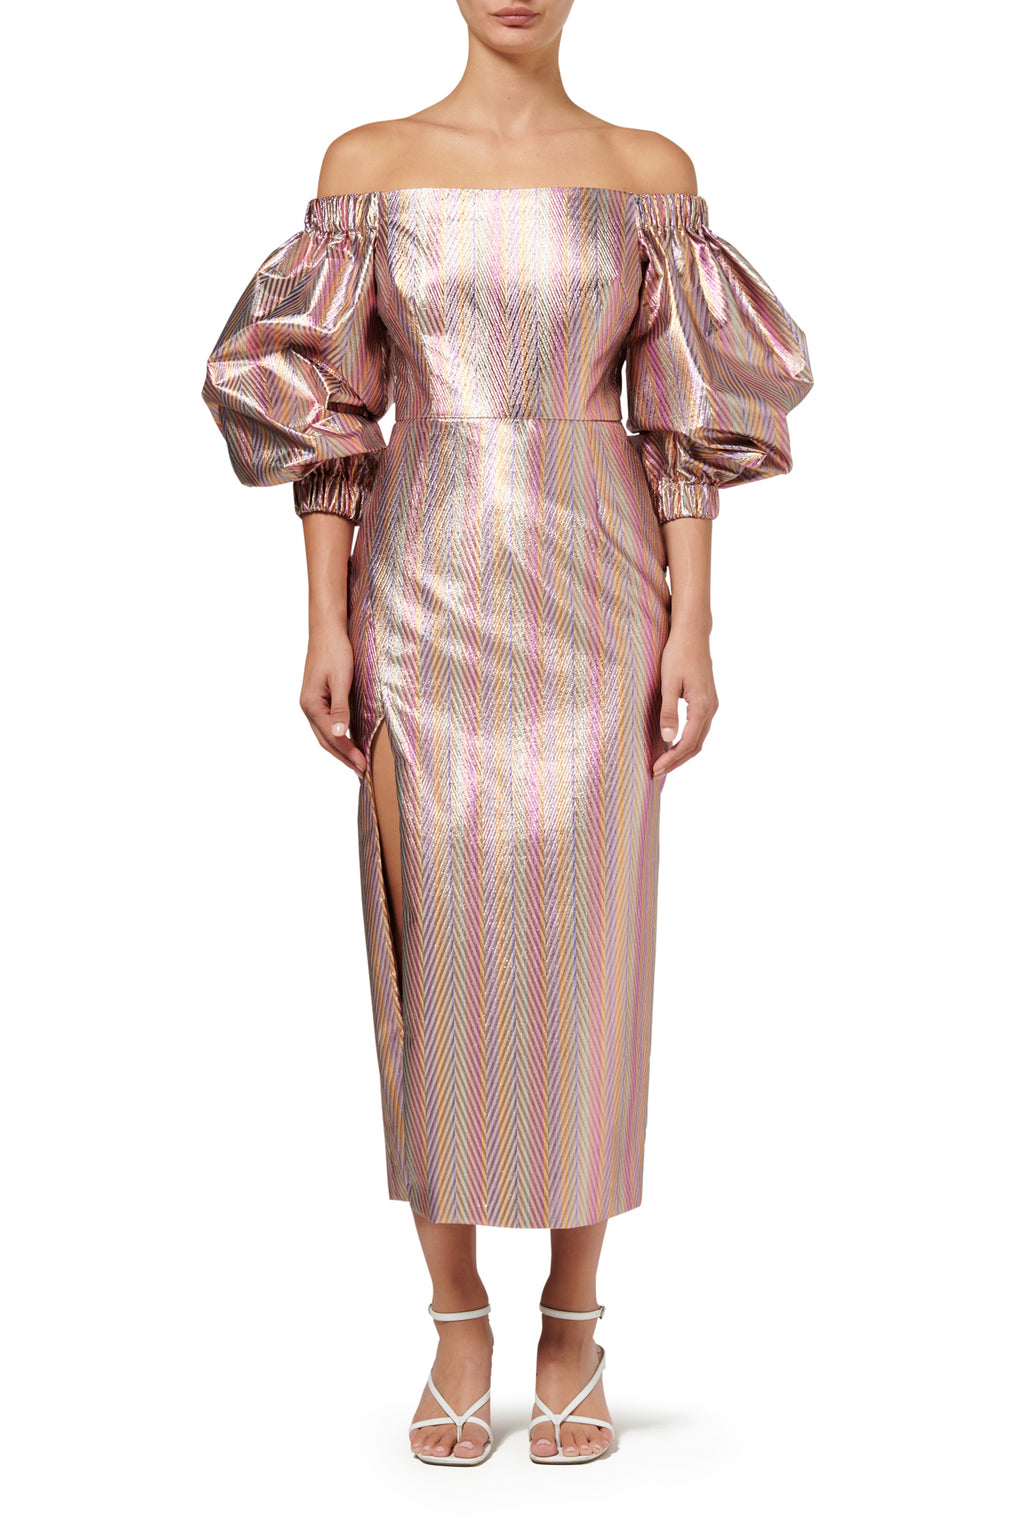 Clio Midi Dress - Metallic Stripe